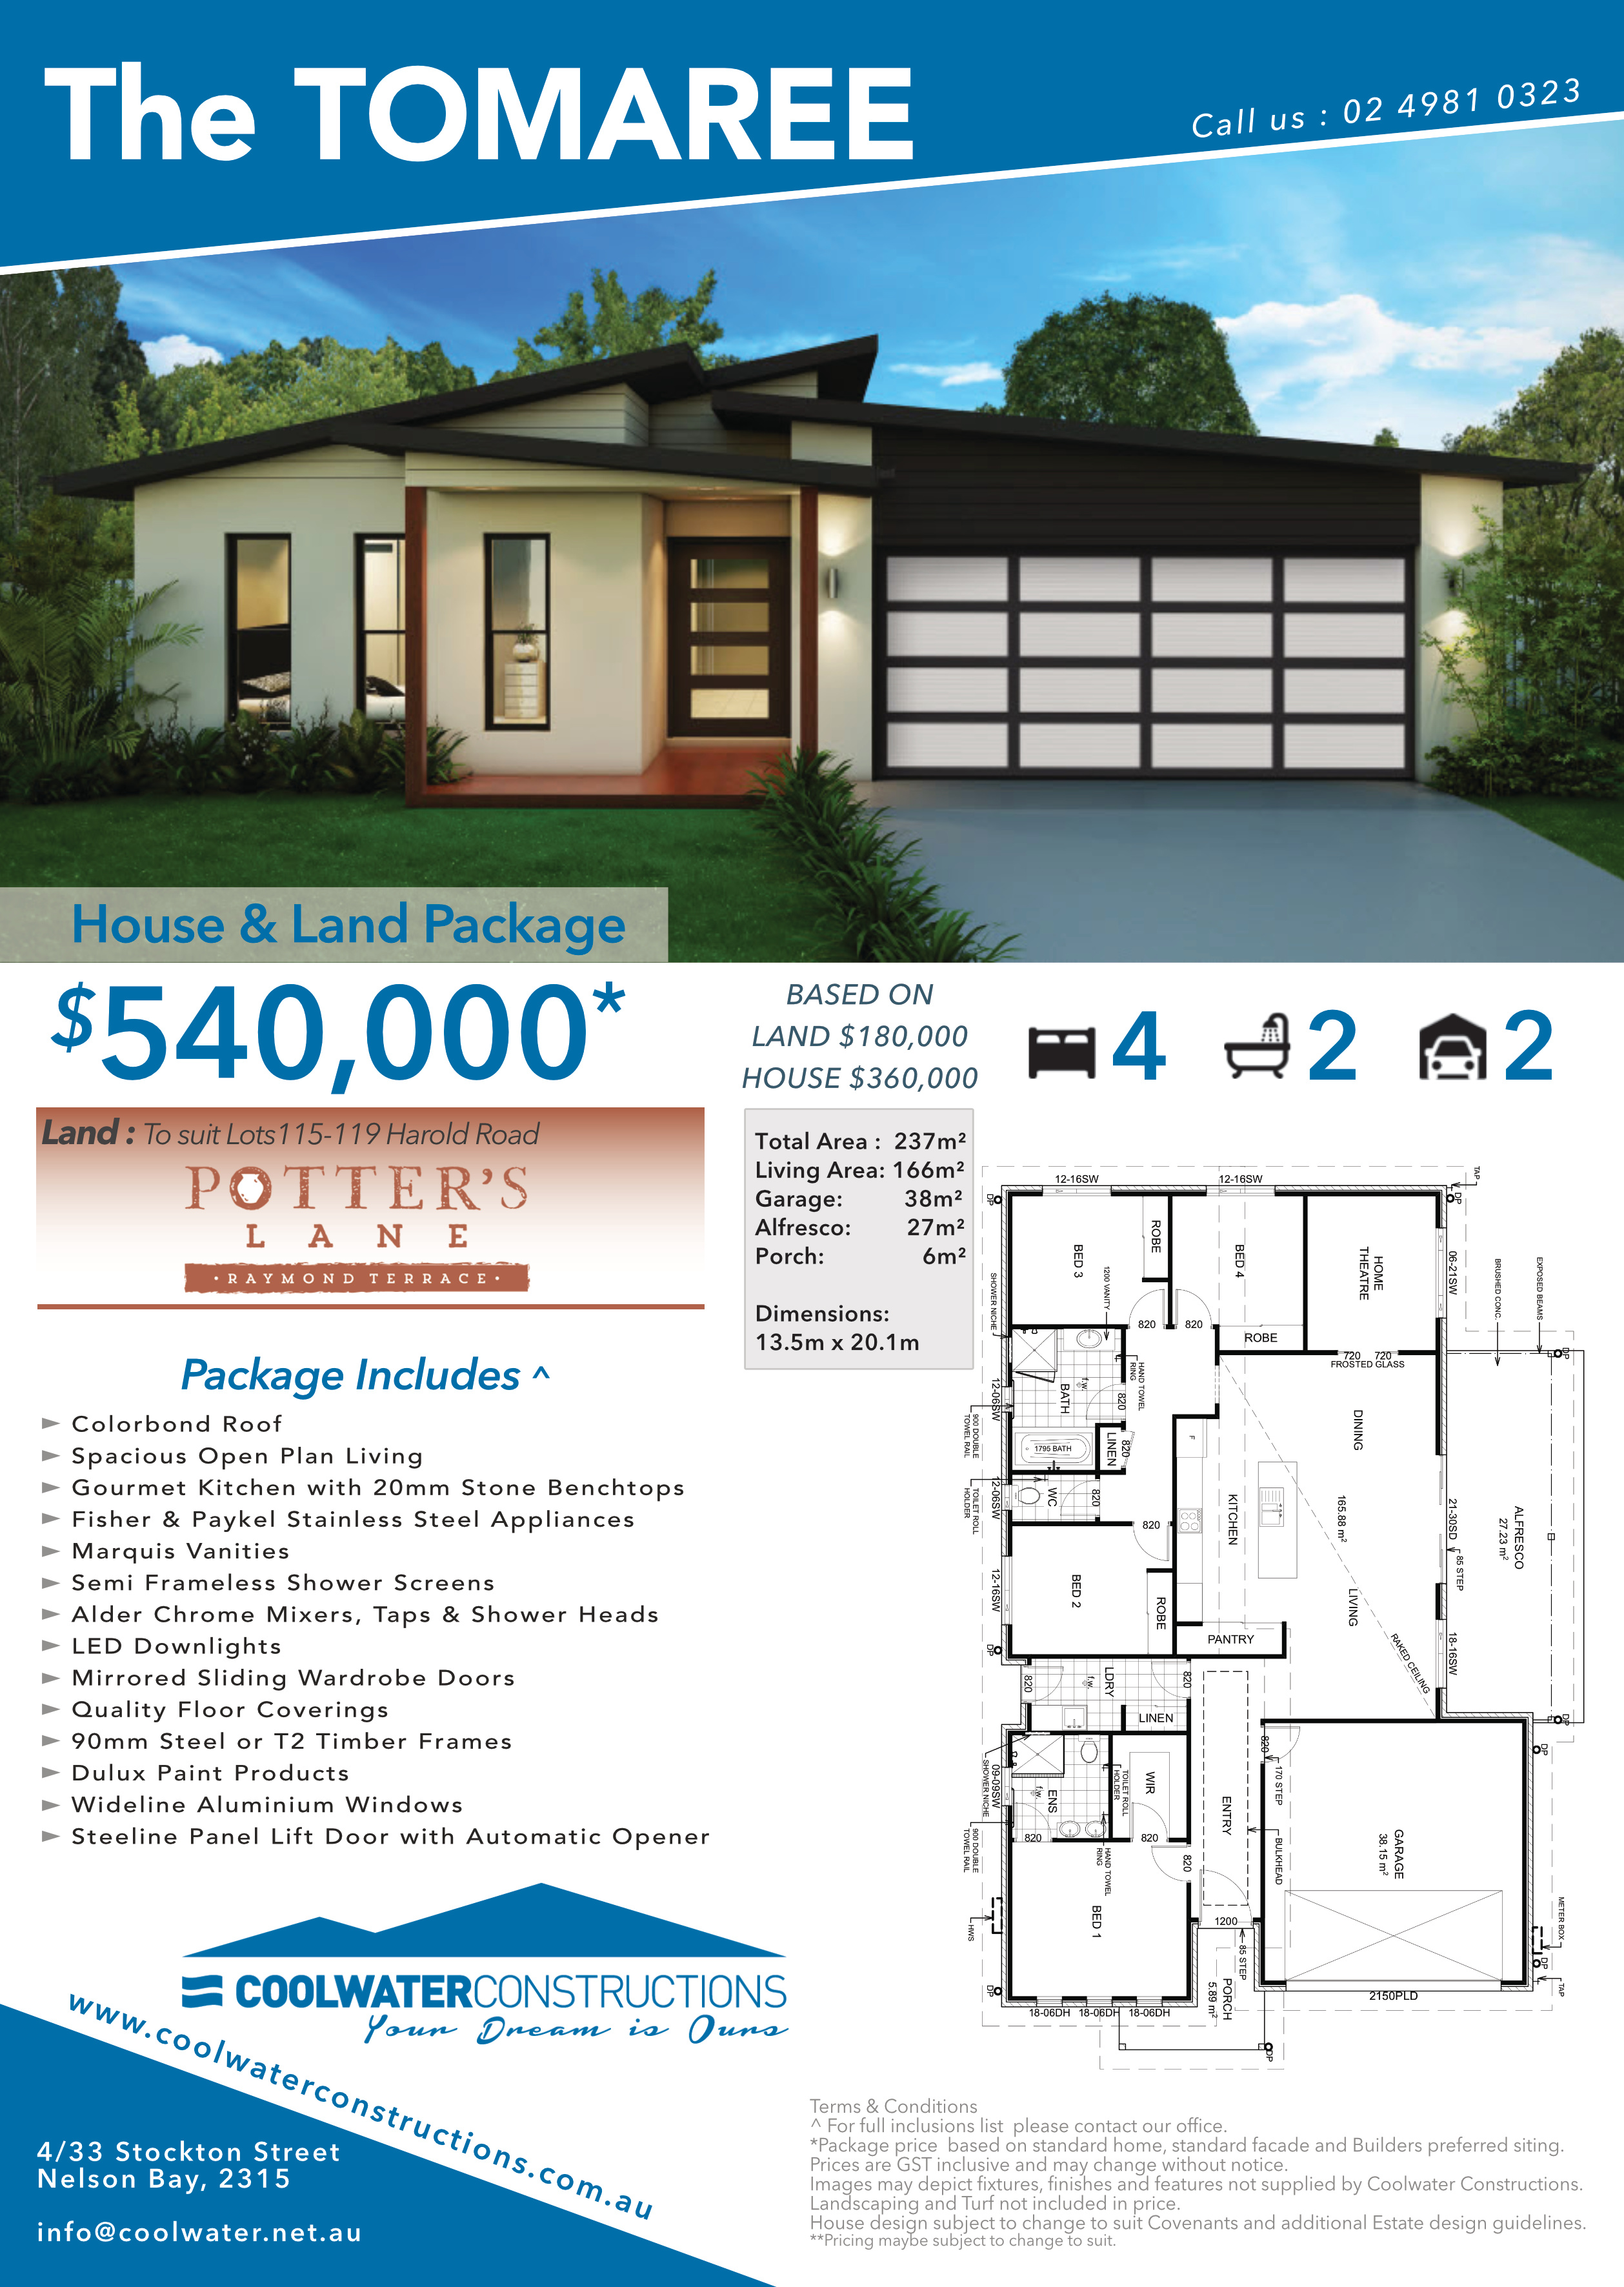 House and Land Package - The Tomaree